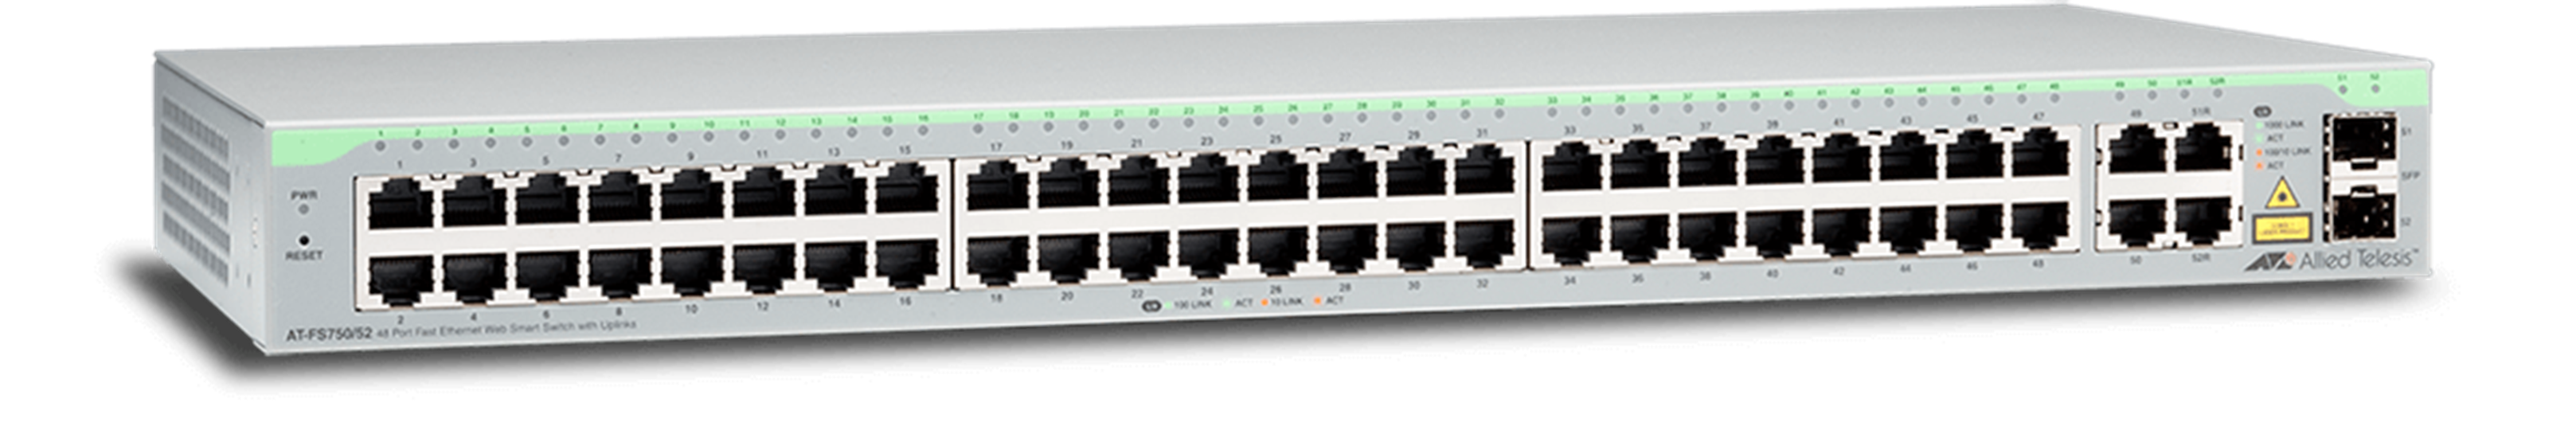 AT-FS750 Series - Layer 2 Websmart Fast Ethernet Switch